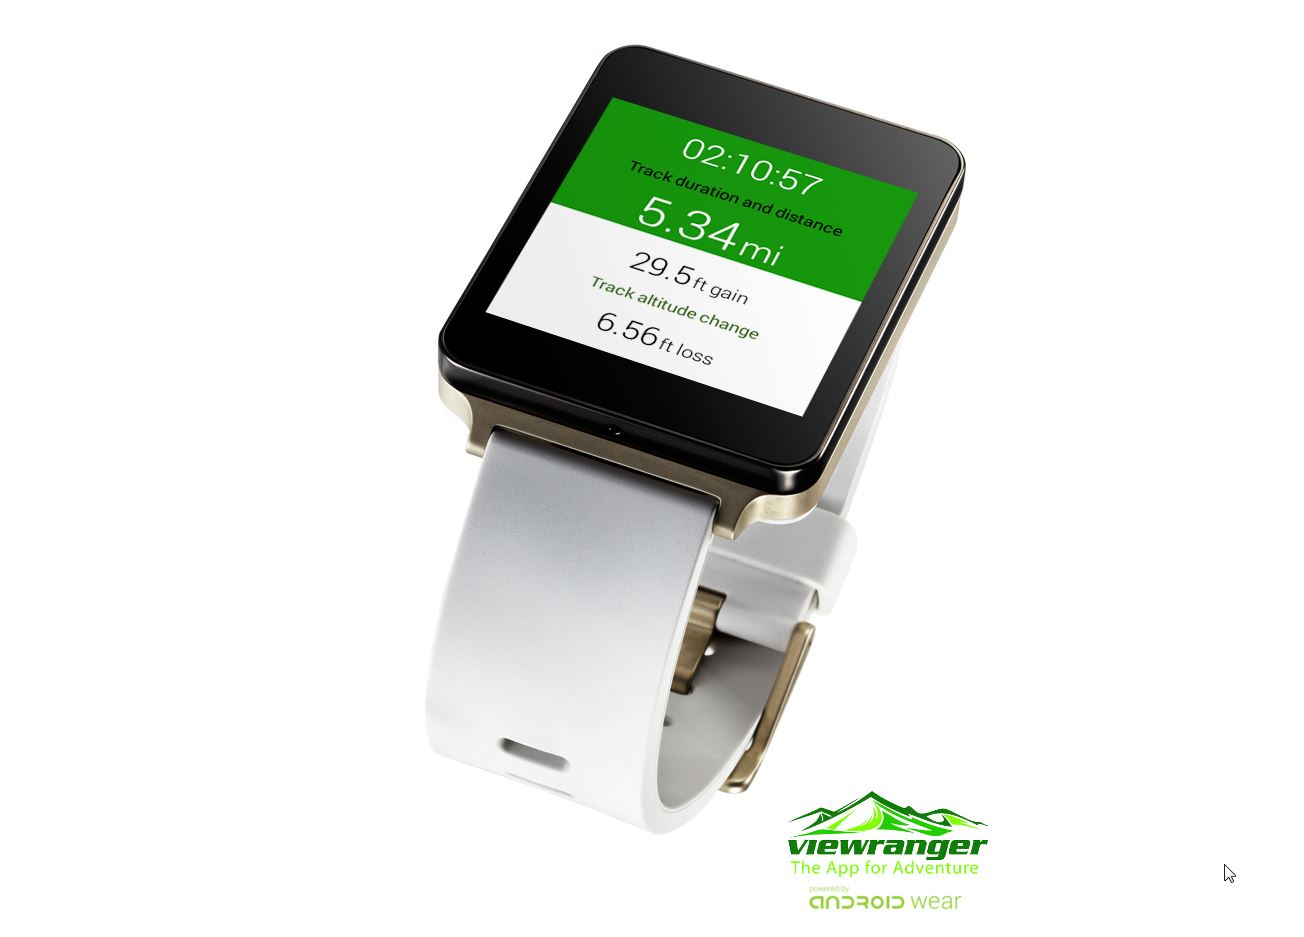 Viewranger Offers Active Navigation Through Android Wear